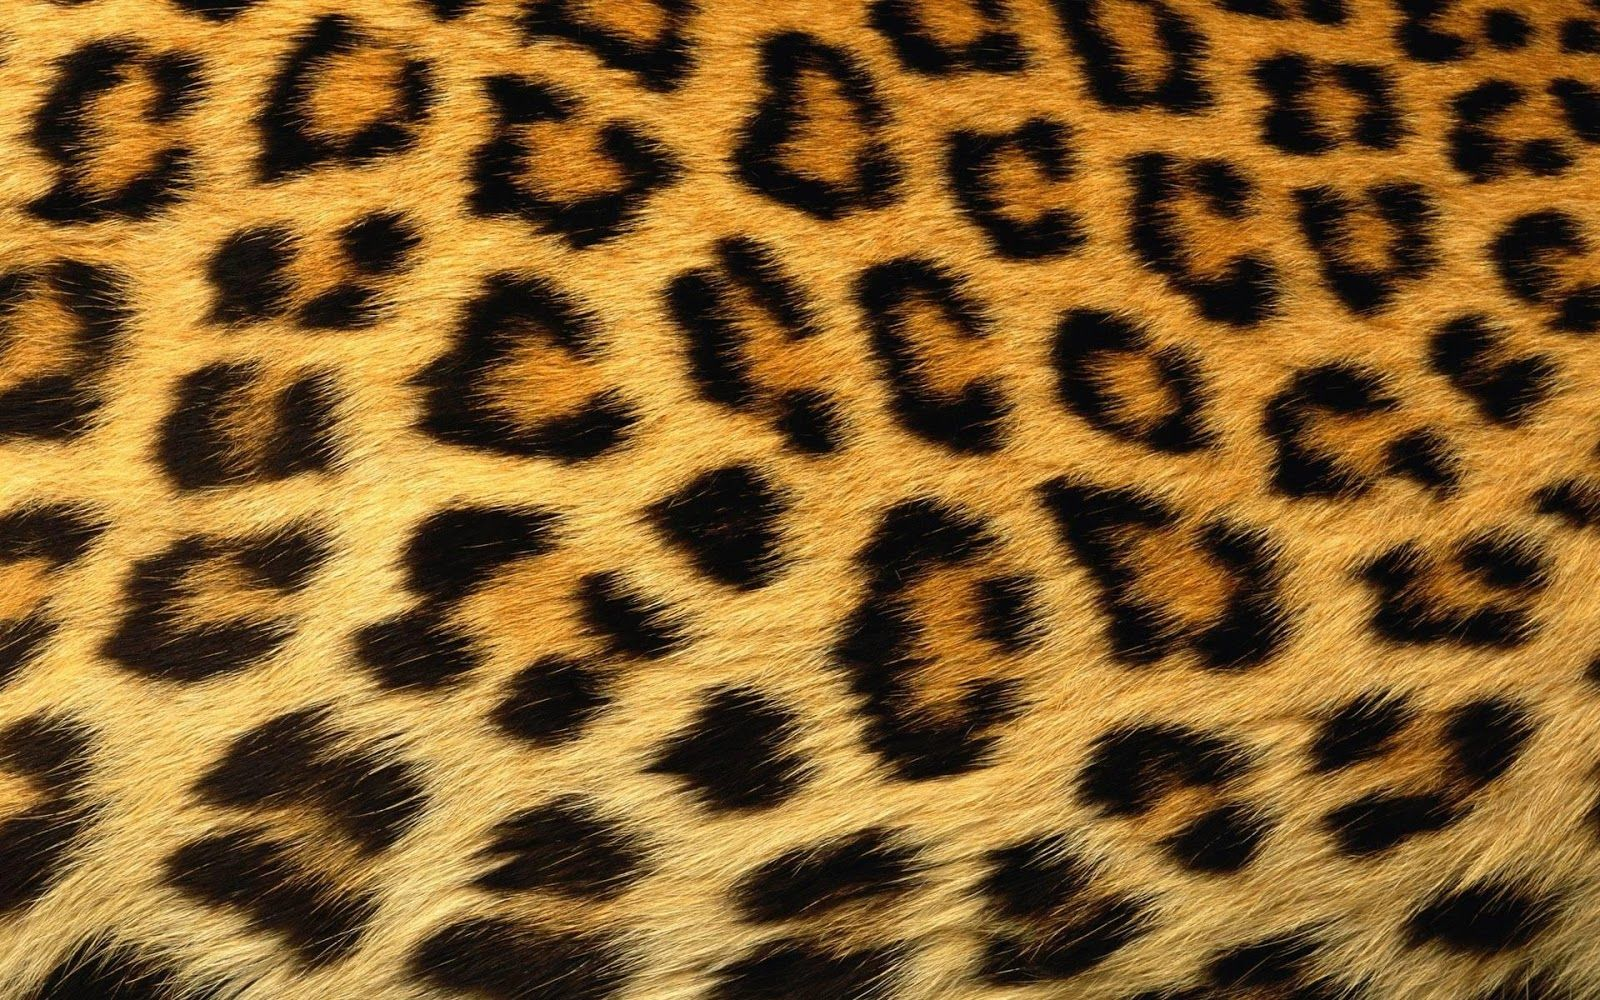 Animal Print Wallpaper High Quality Desktop Iphone And Android Background And Wallpaper